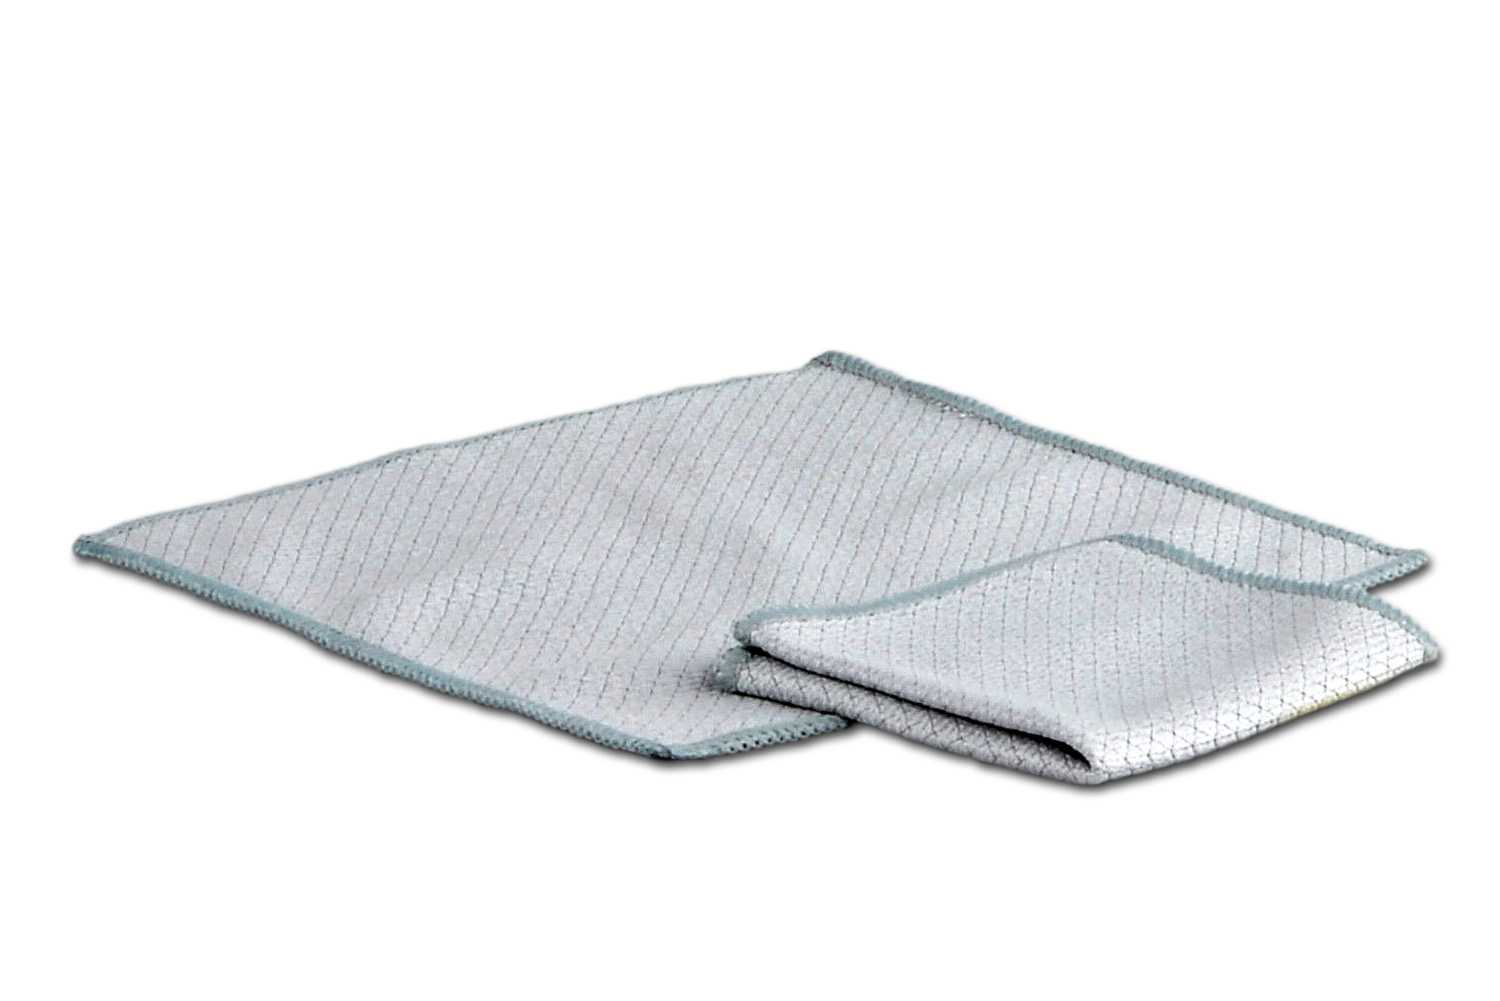 Anti-static cloths are recommended when cleaning electronic components.